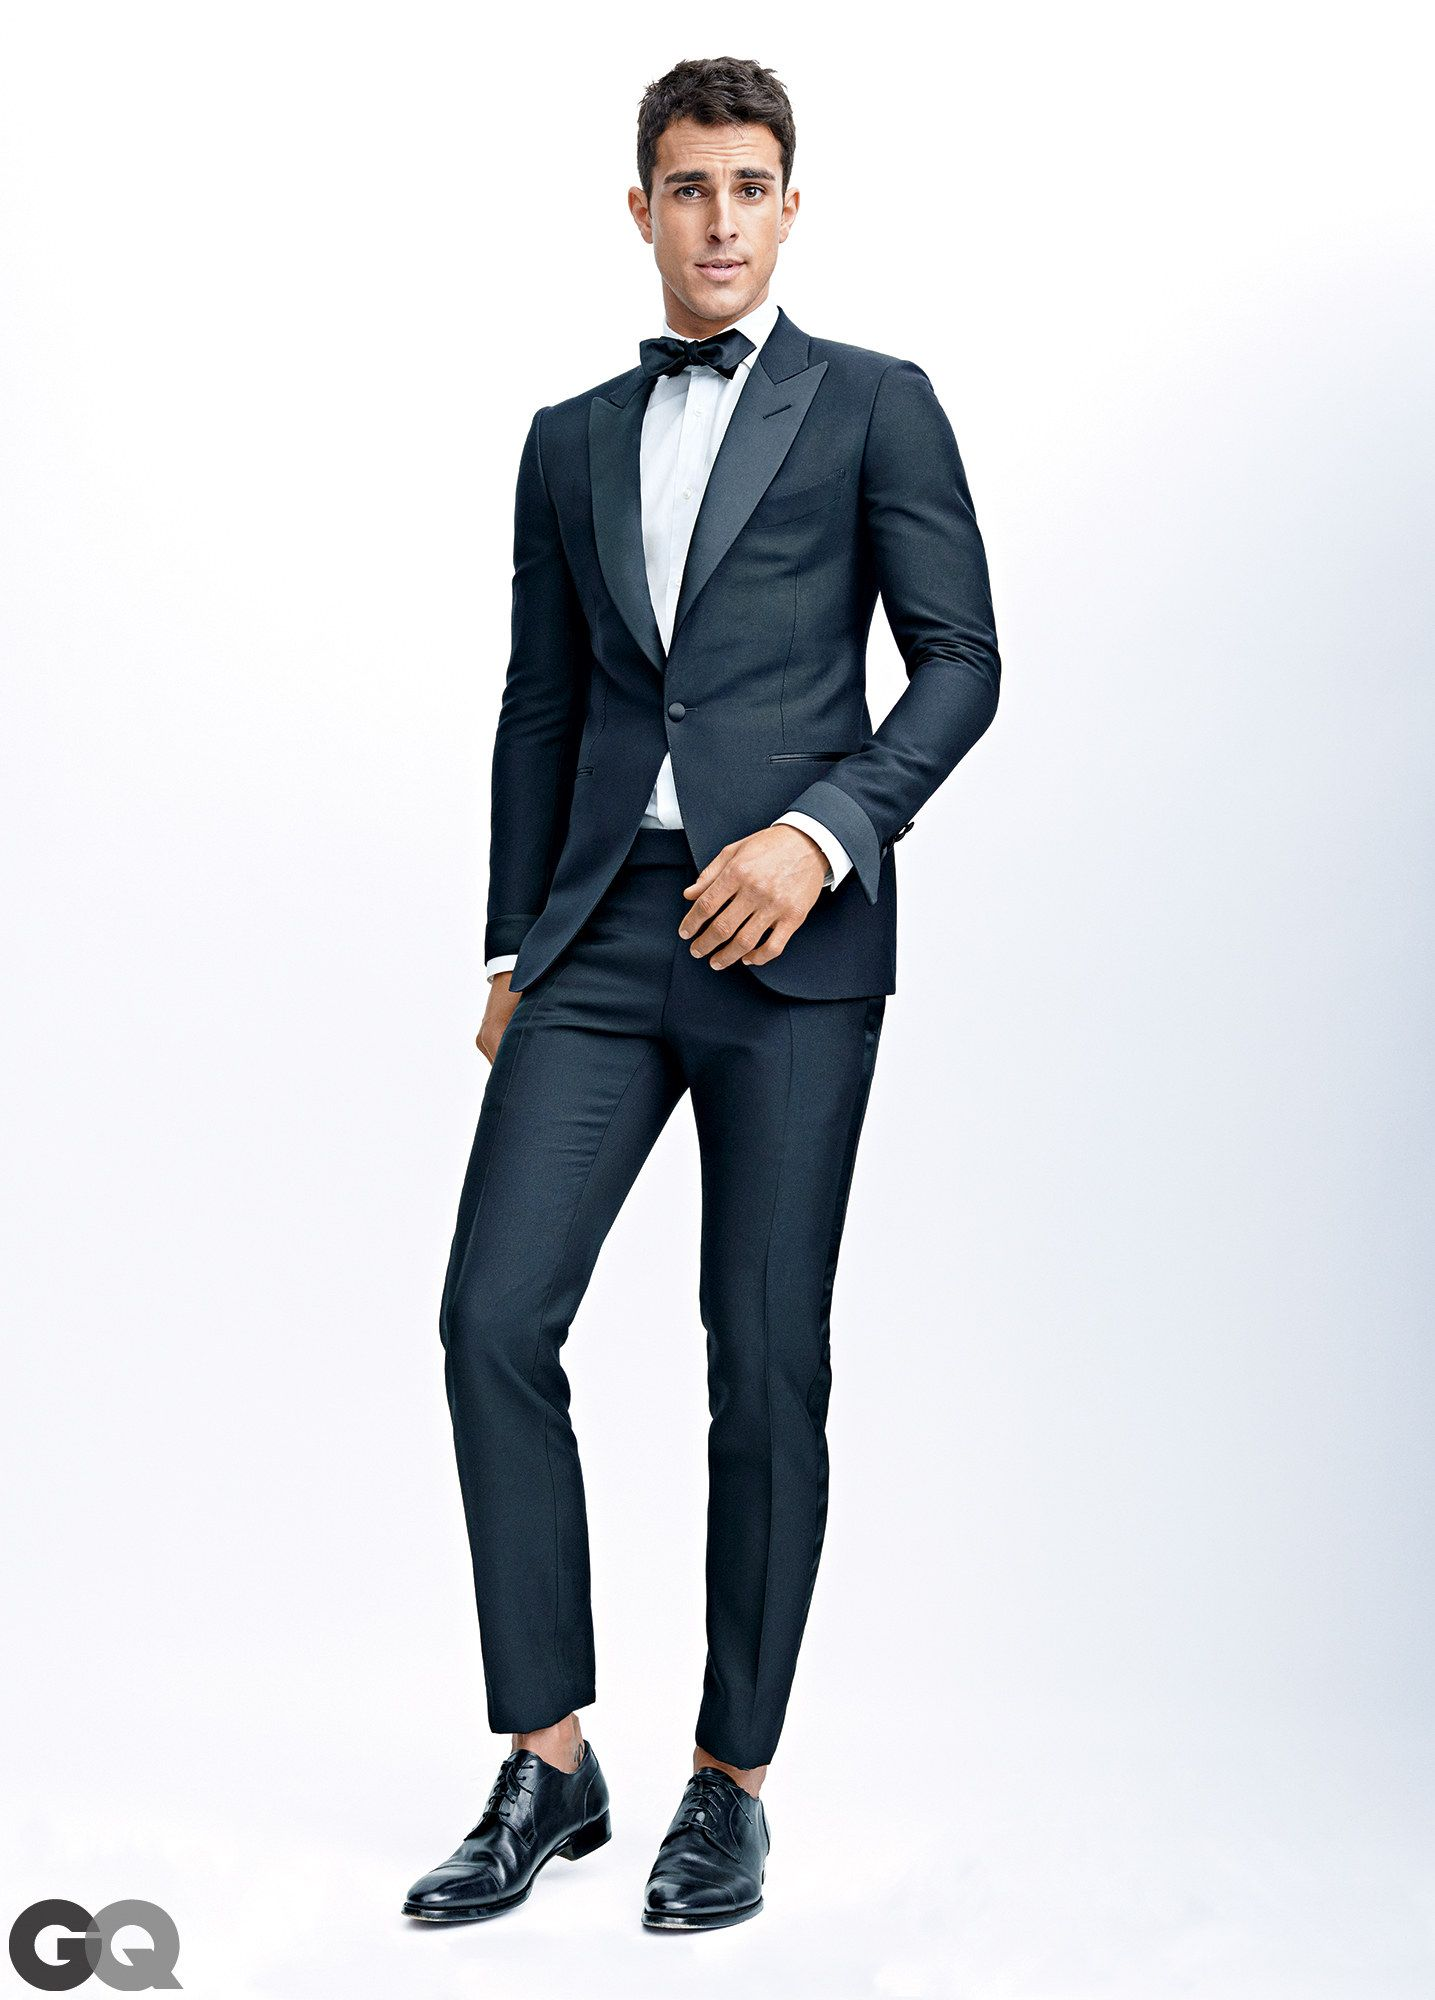 The new and improved way to wear black tie mens fashion the new way to wear black tie gq ccuart Choice Image